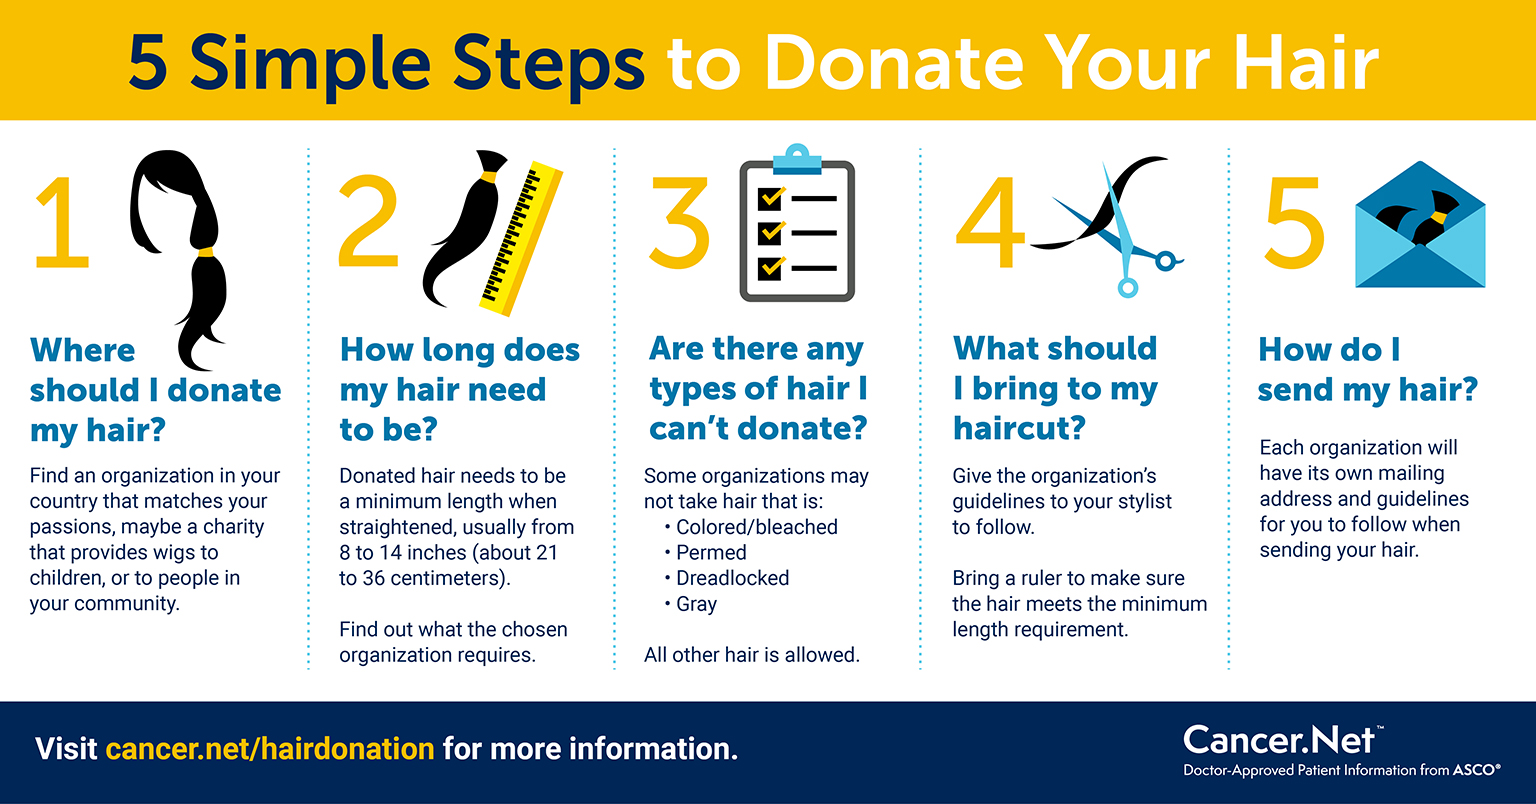 5 Simple Steps to Donate Your Hair